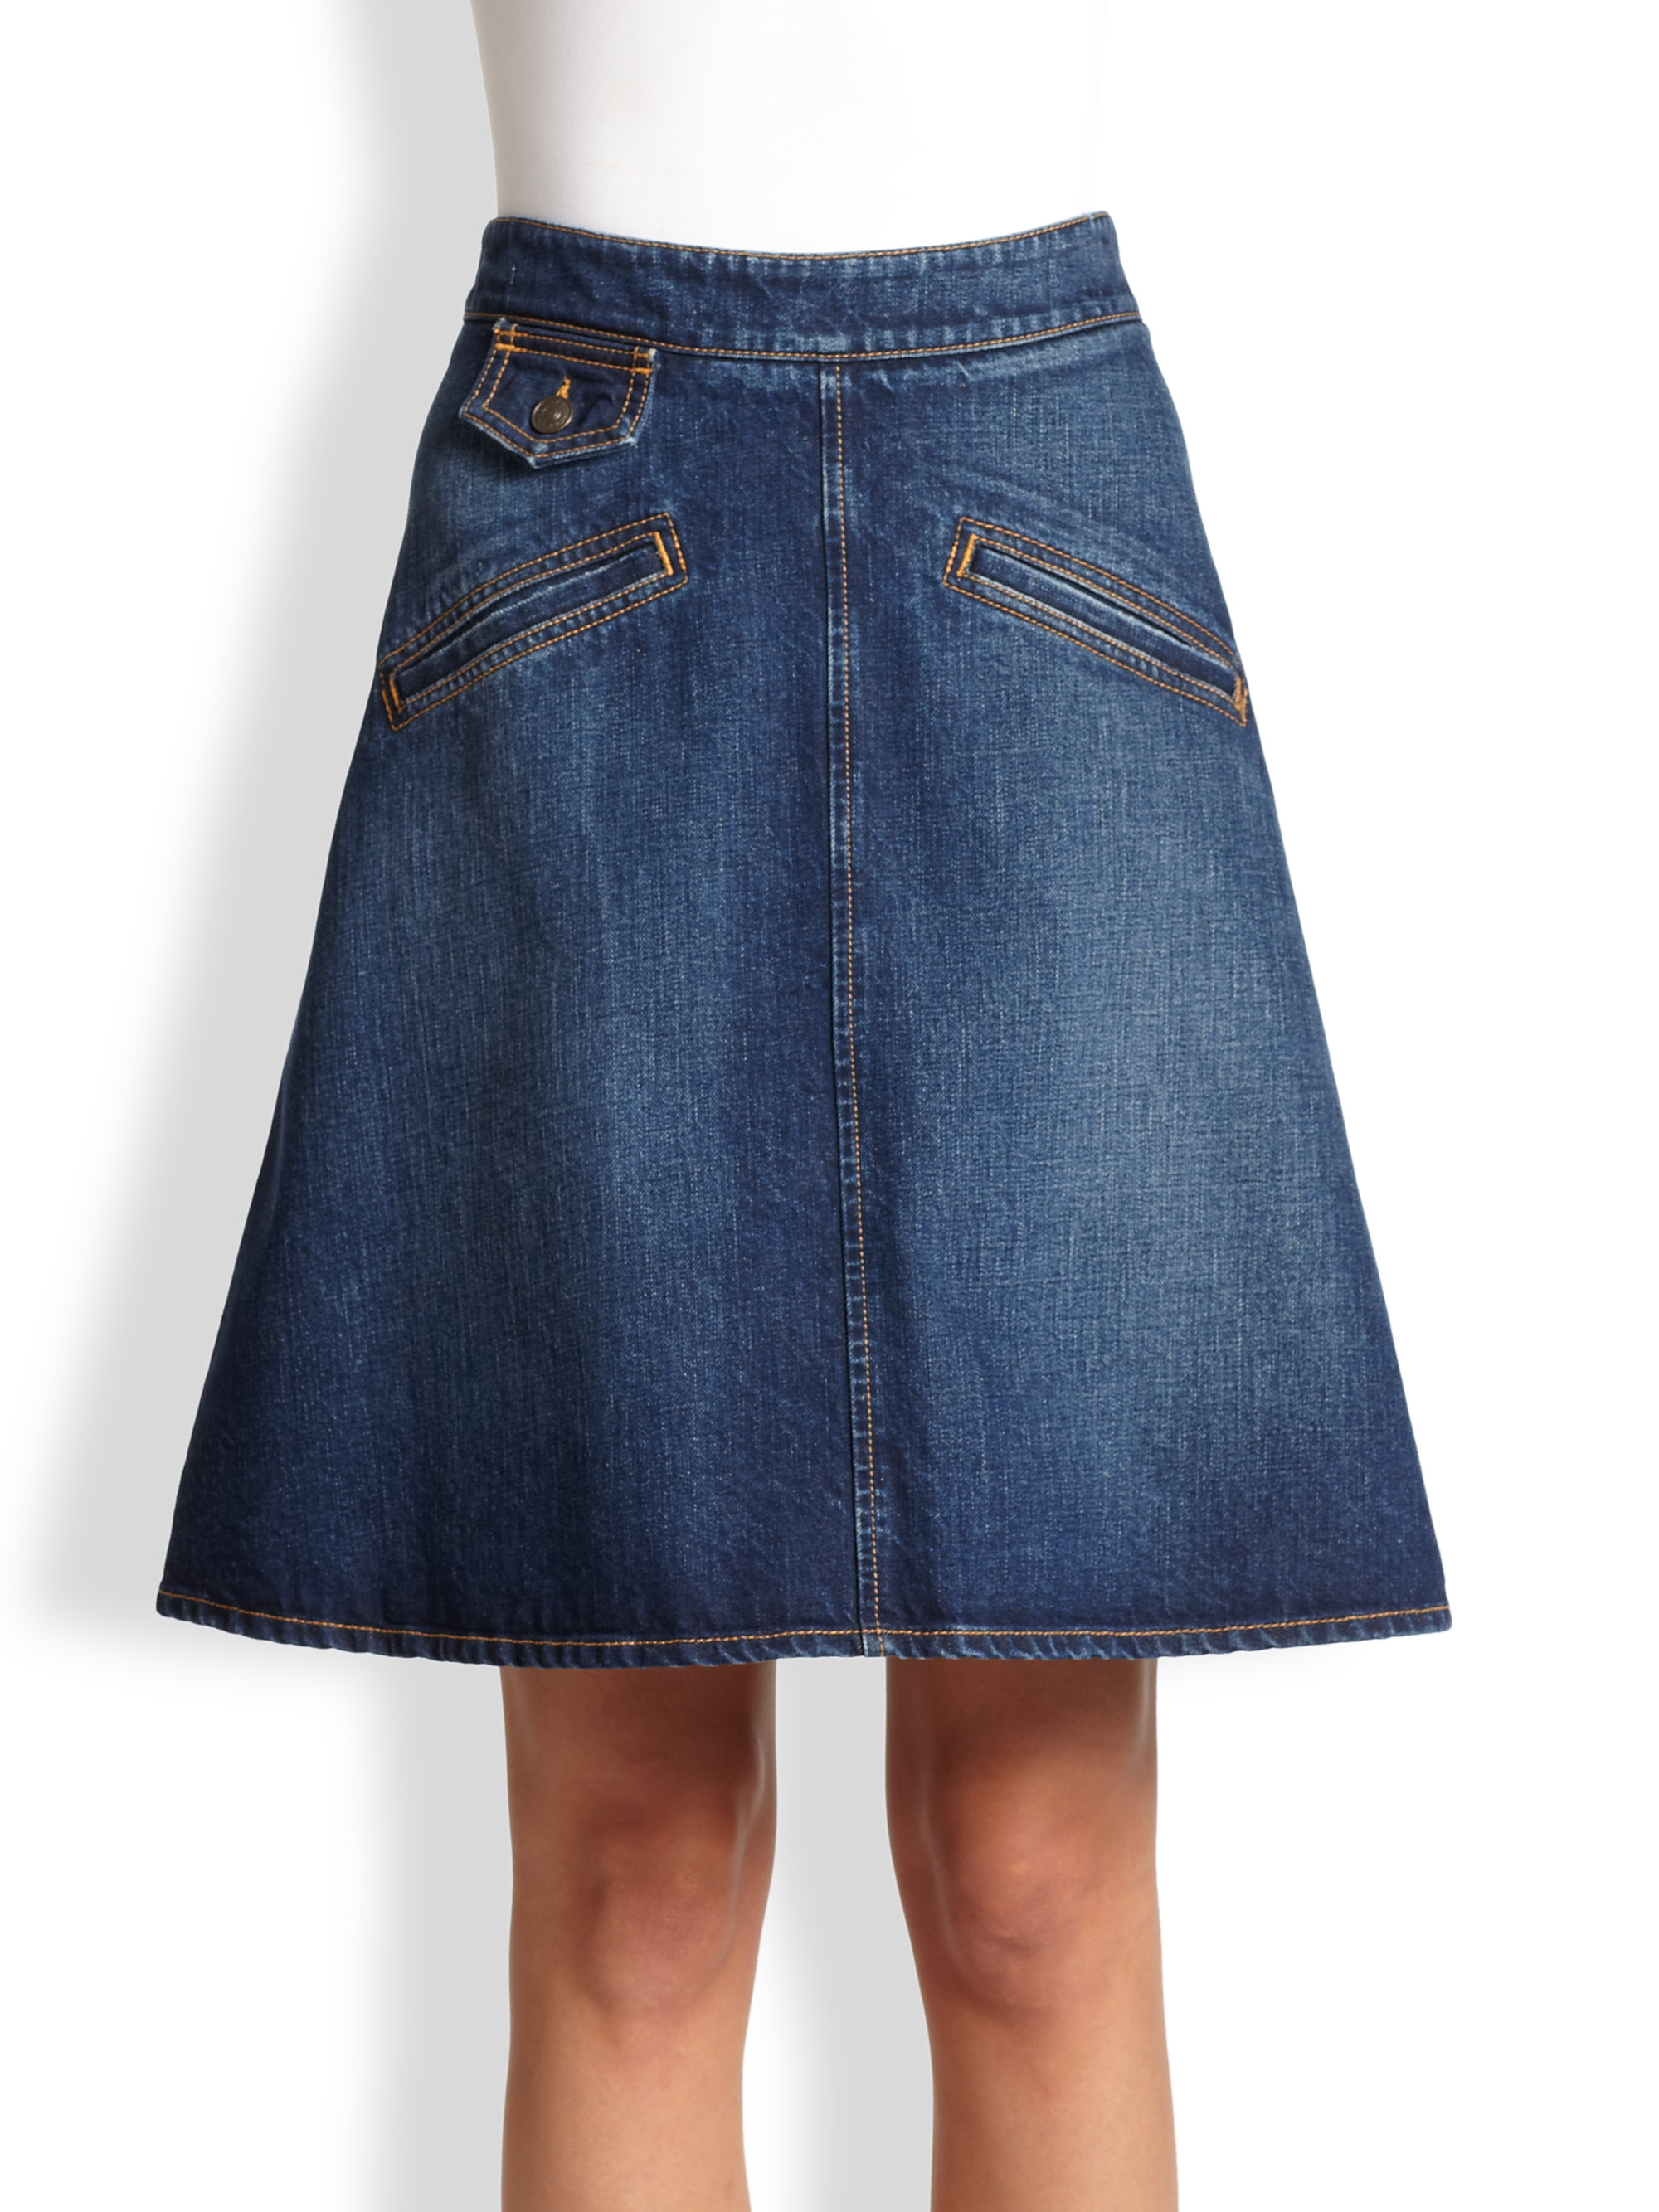 See by chloé Denim Aline Skirt in Blue | Lyst